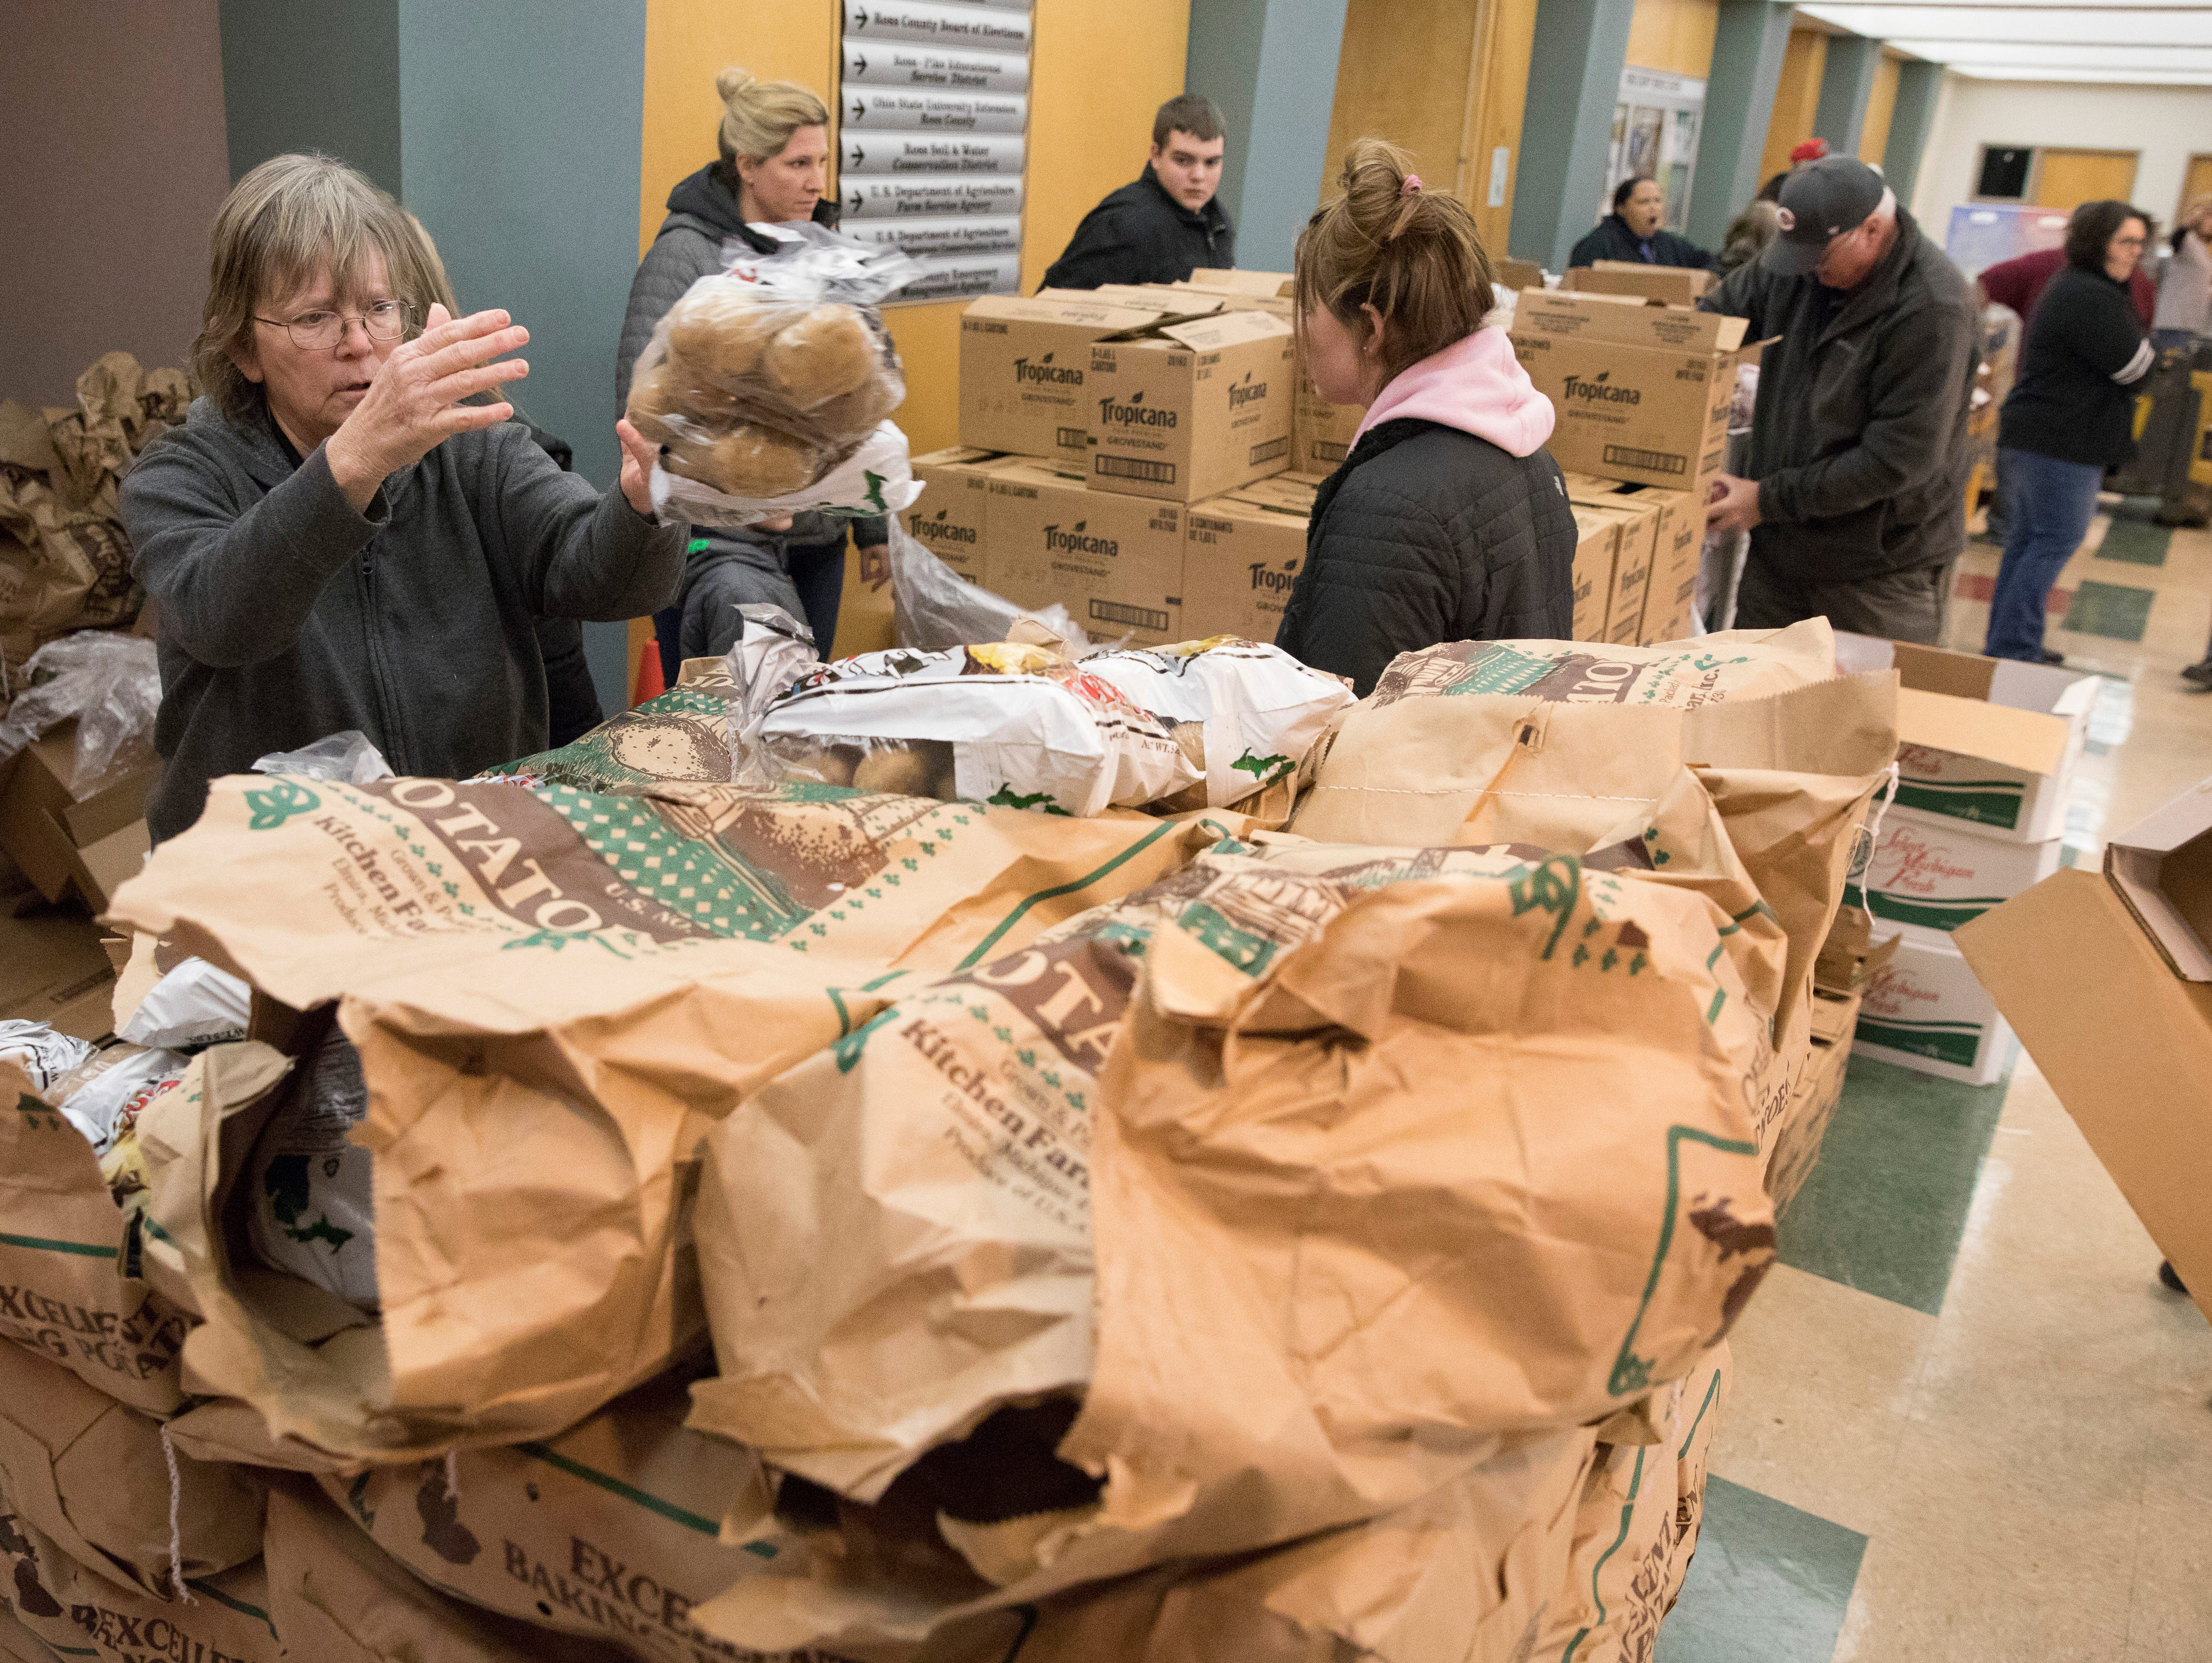 Volunteer Bev Davis sorts through bags of potatoes as she and other volunteers get ready to serve local residents during the Mobile Market at the Ross County Service Center.